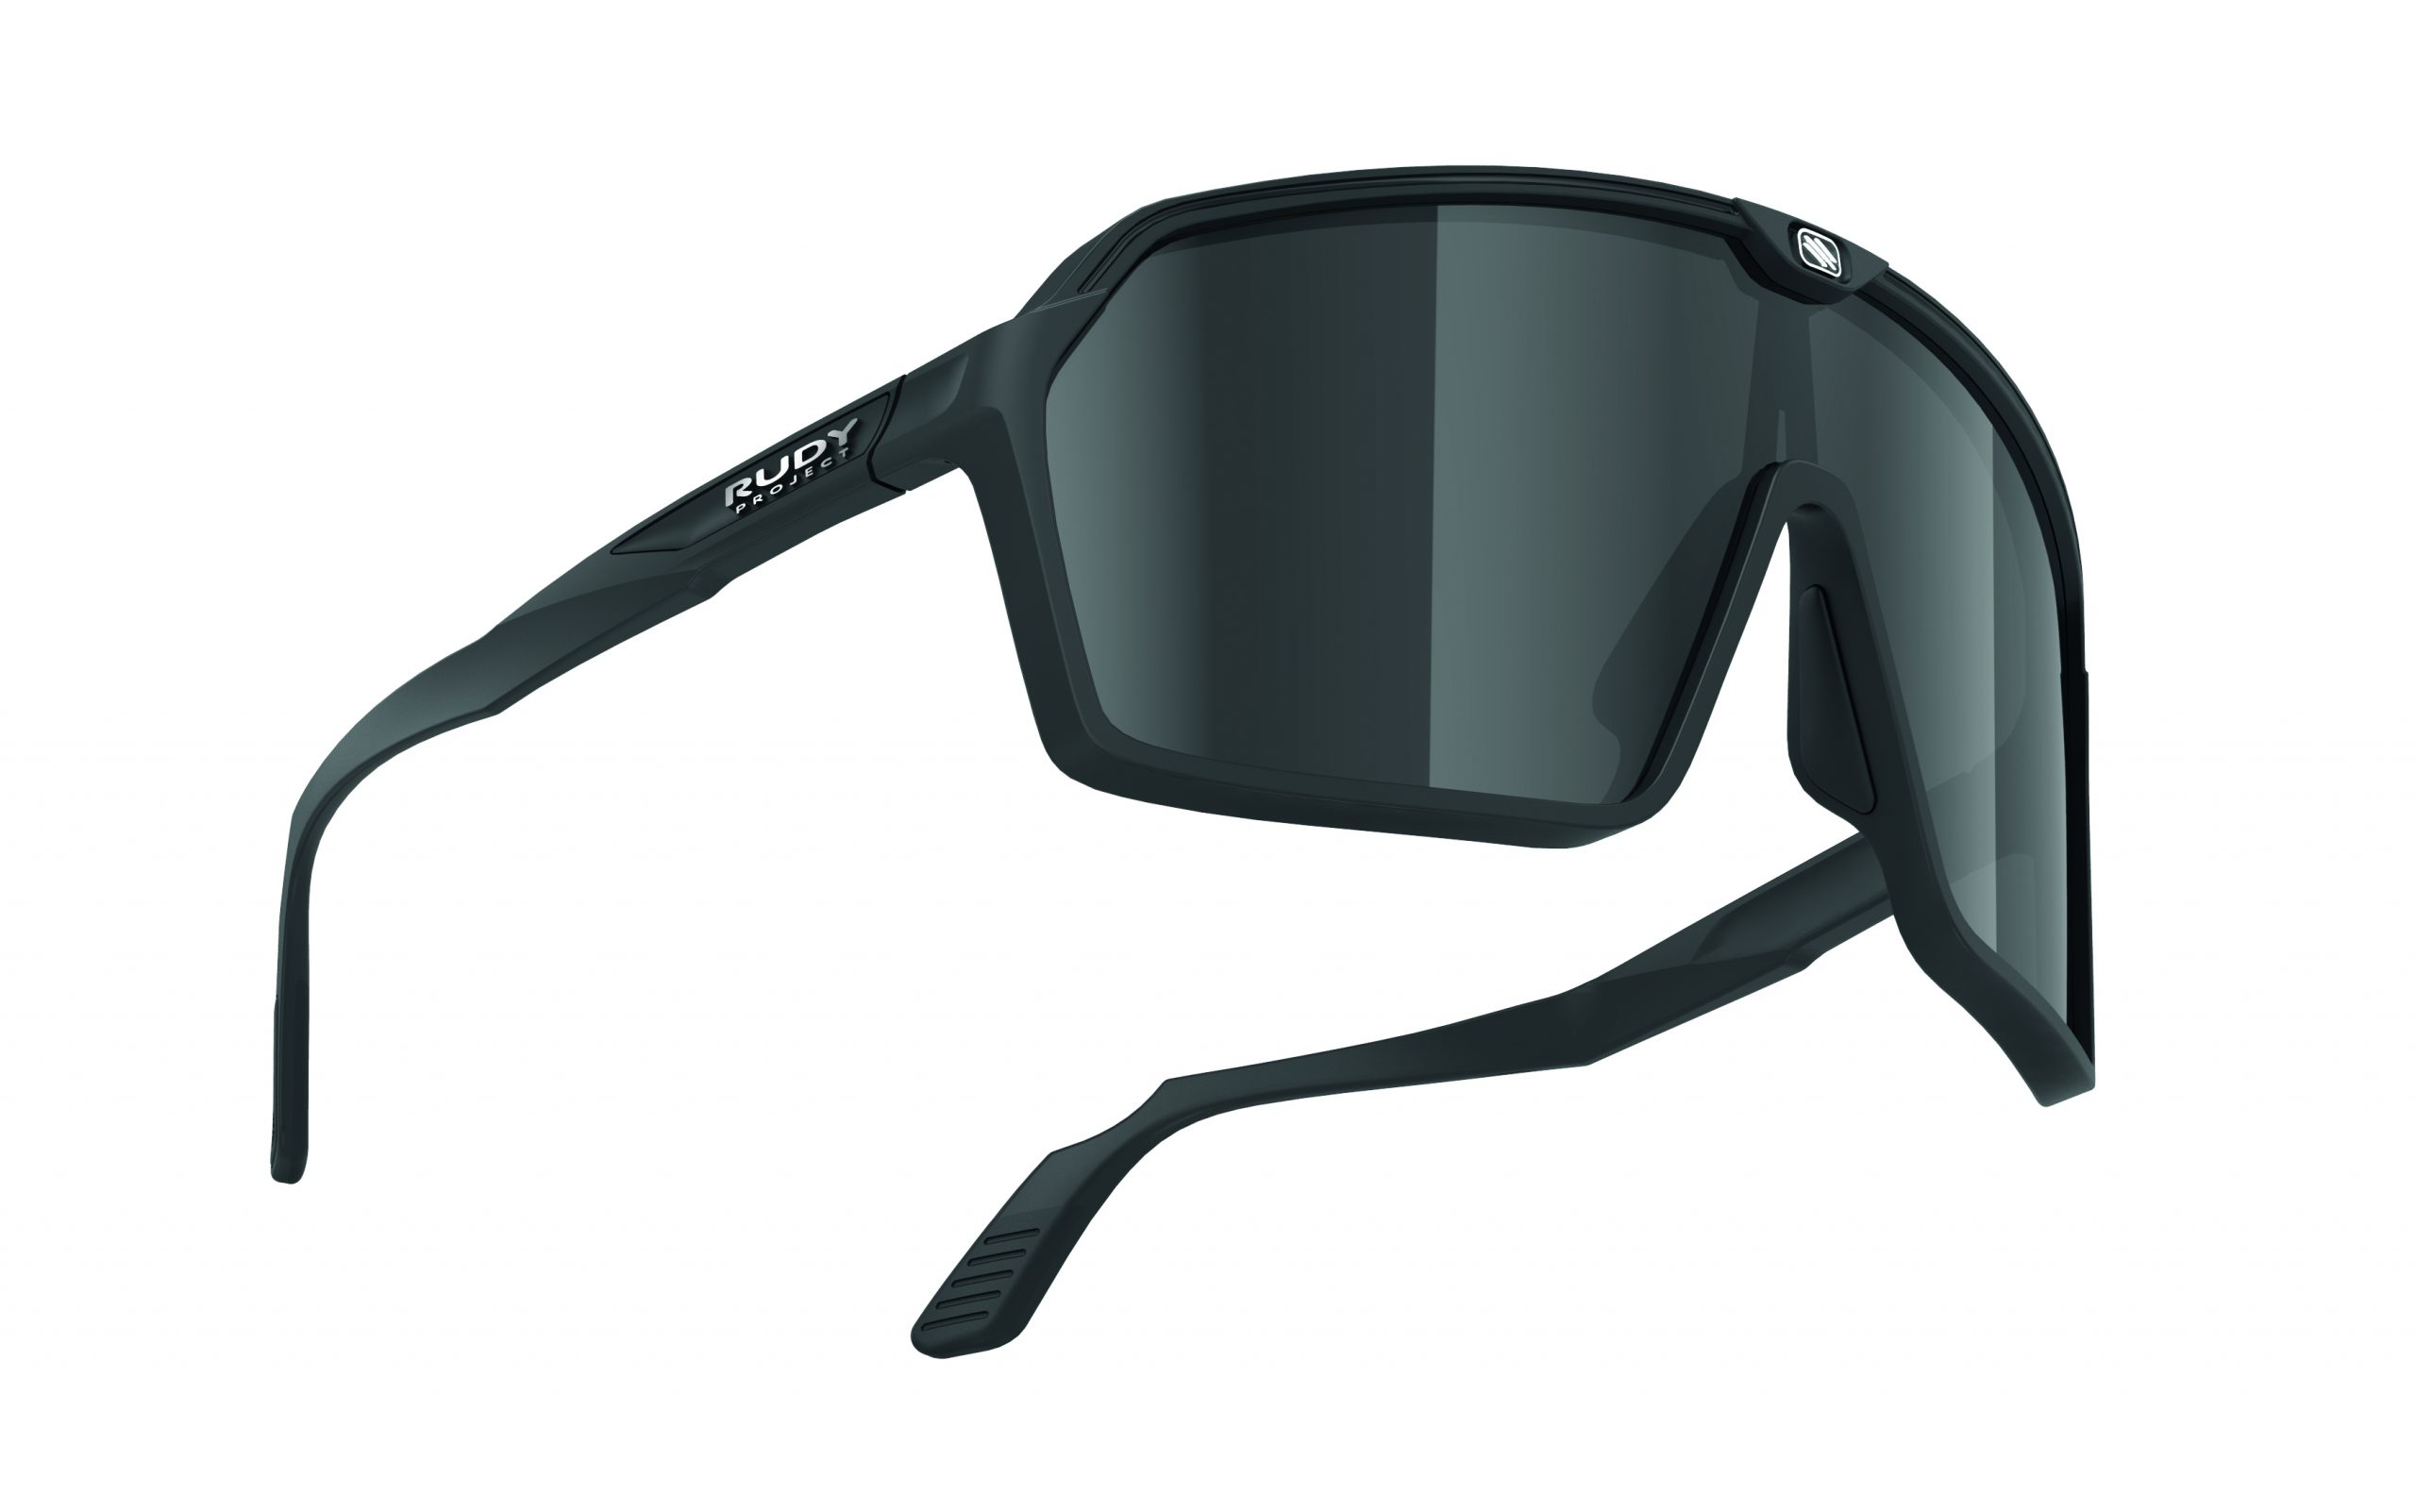 https://www.rudyproject.com/it/it-it/prodotti/occhiali-active-lifestyle/spinshield.html?code=SP724047-0000